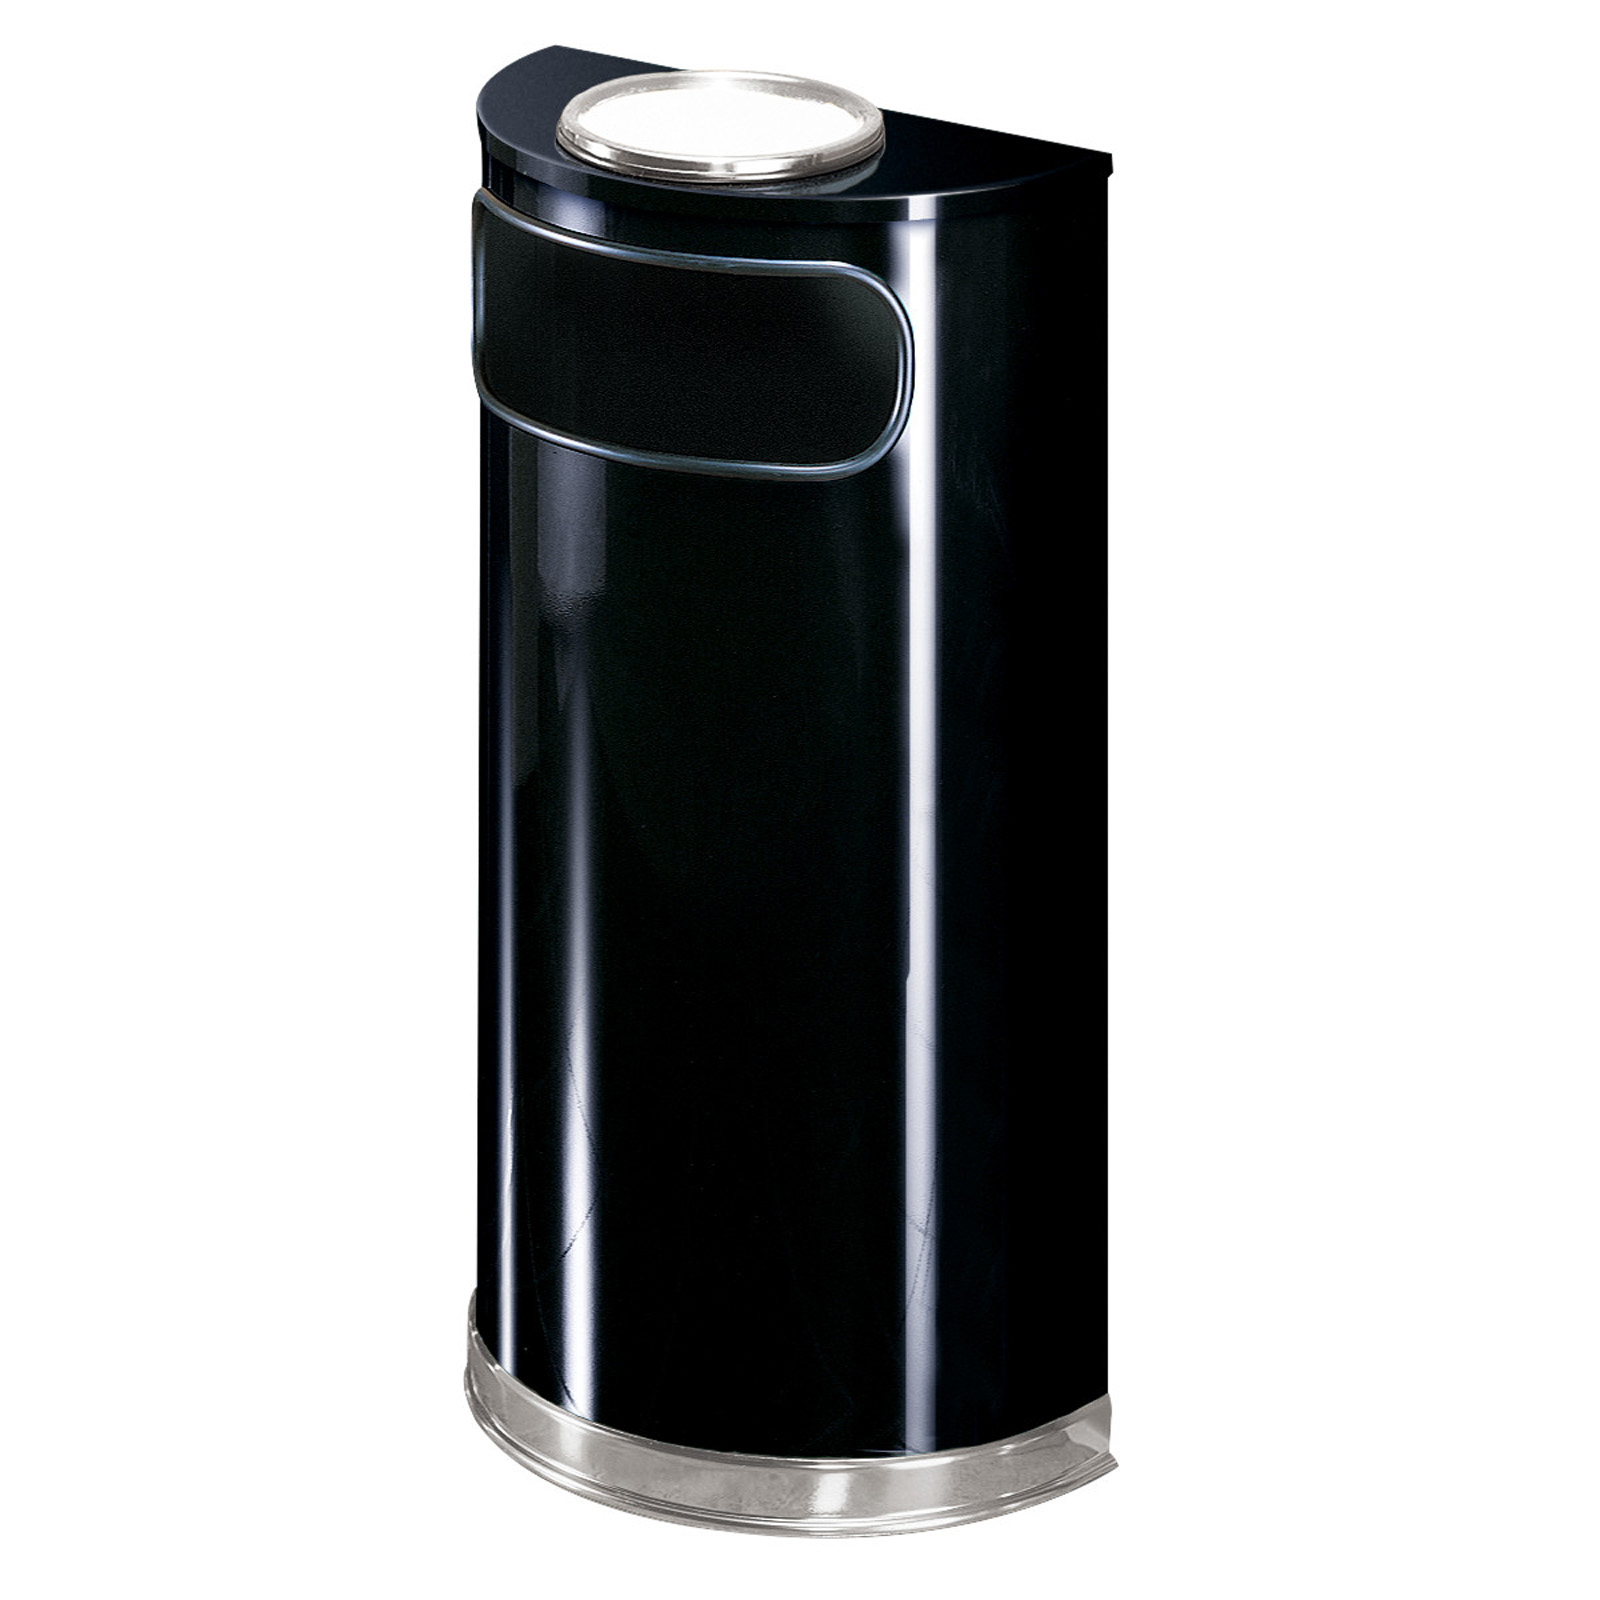 Rubbermaid Commercial Products FGSO8SU20PLBK ash tray receptacle